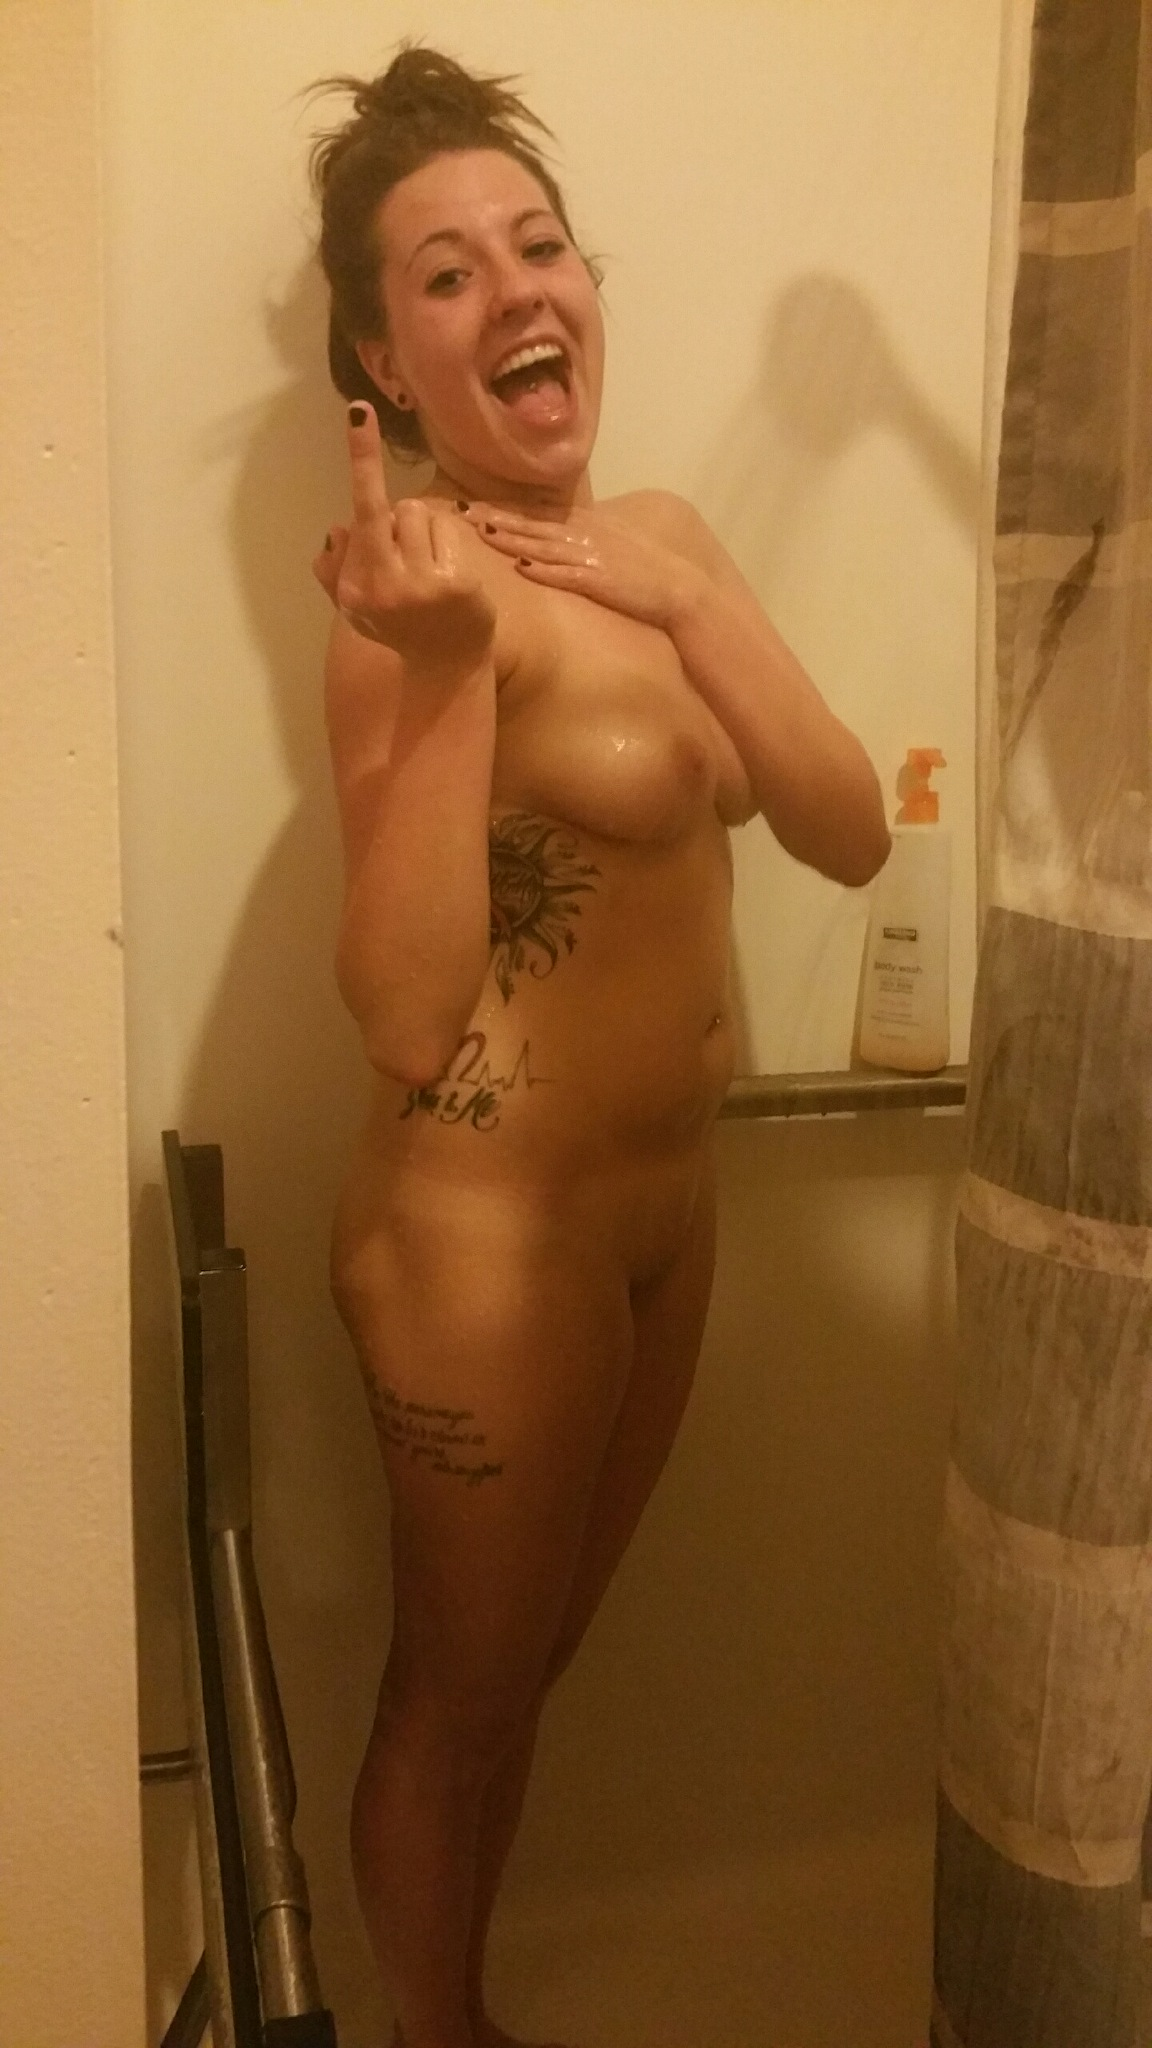 Something caught in shower and nude simply